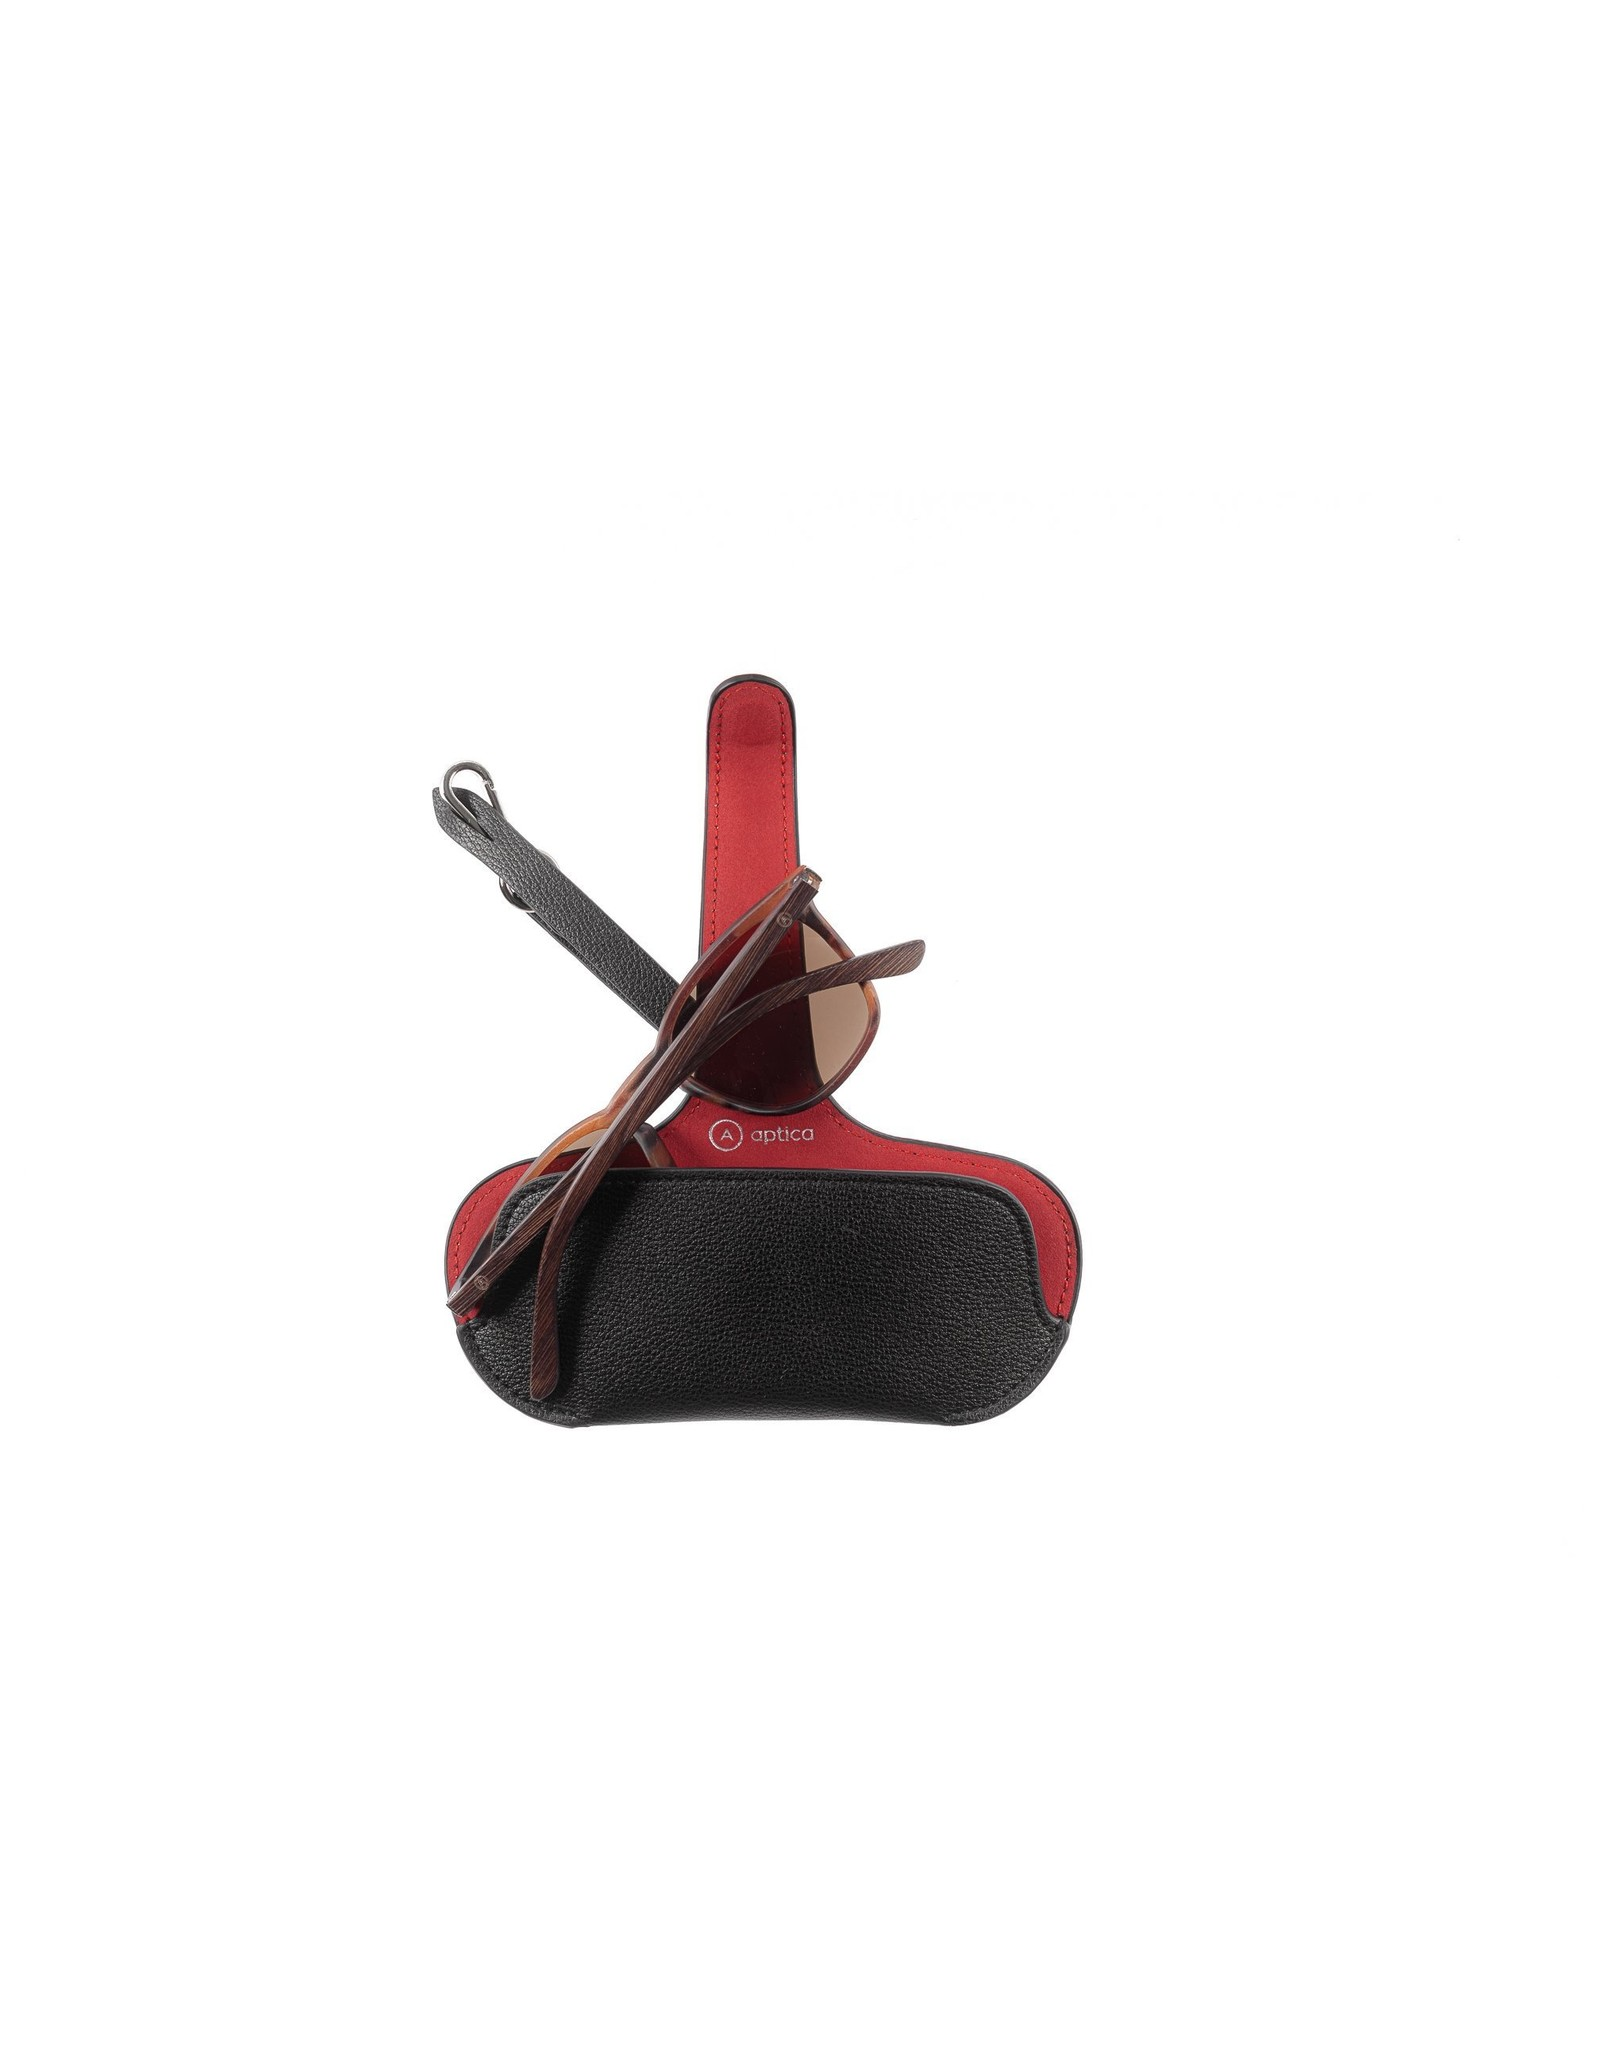 Brilatelier - Accessoires Etui - Pouch - Black with red lips